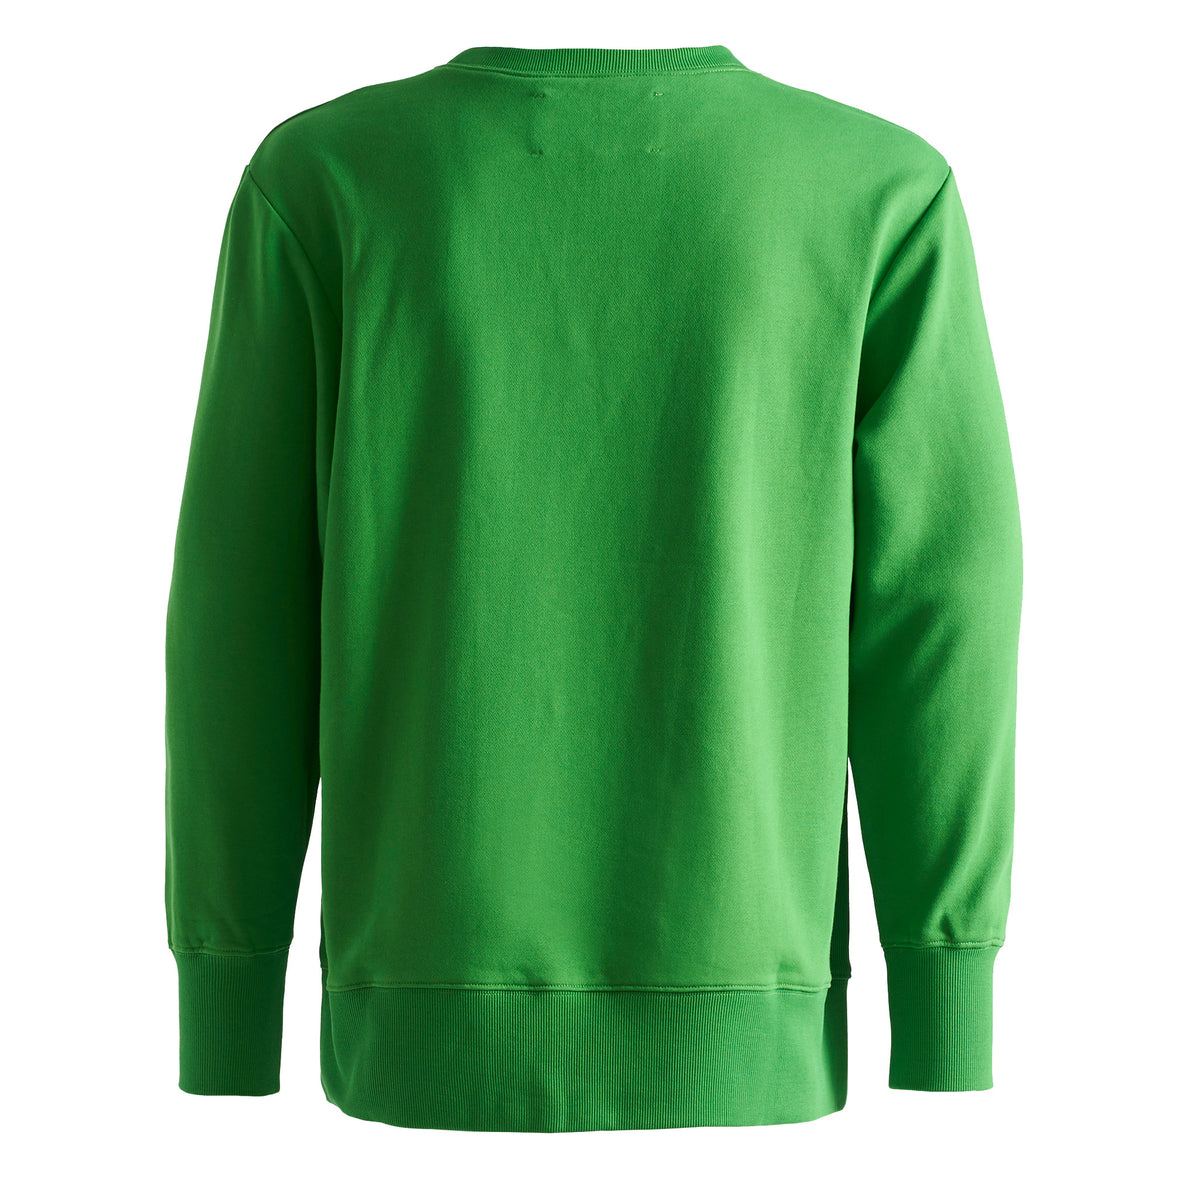 Henri Lloyd X Nigel Cabourn Technical Sweater Emerald Green Back